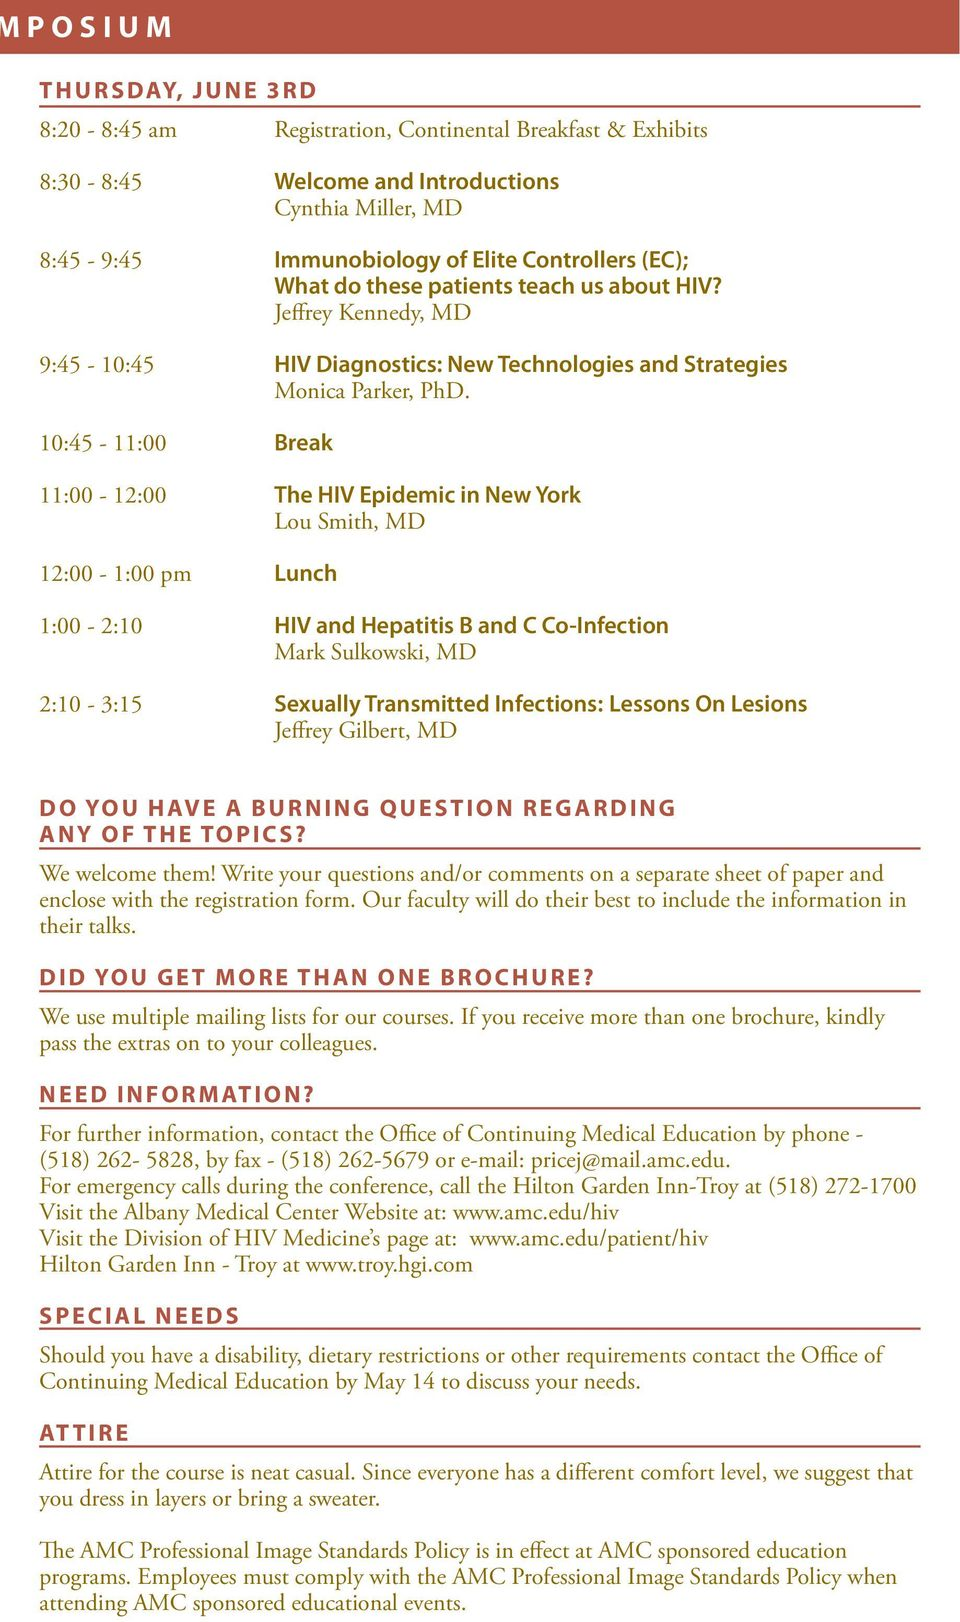 10:45-11:00 Break 11:00-12:00 The HIV Epidemic in New York Lou Smith, MD 12:00-1:00 pm Lunch 1:00-2:10 HIV and Hepatitis B and C Co-Infection Mark Sulkowski, MD 2:10-3:15 Sexually Transmitted